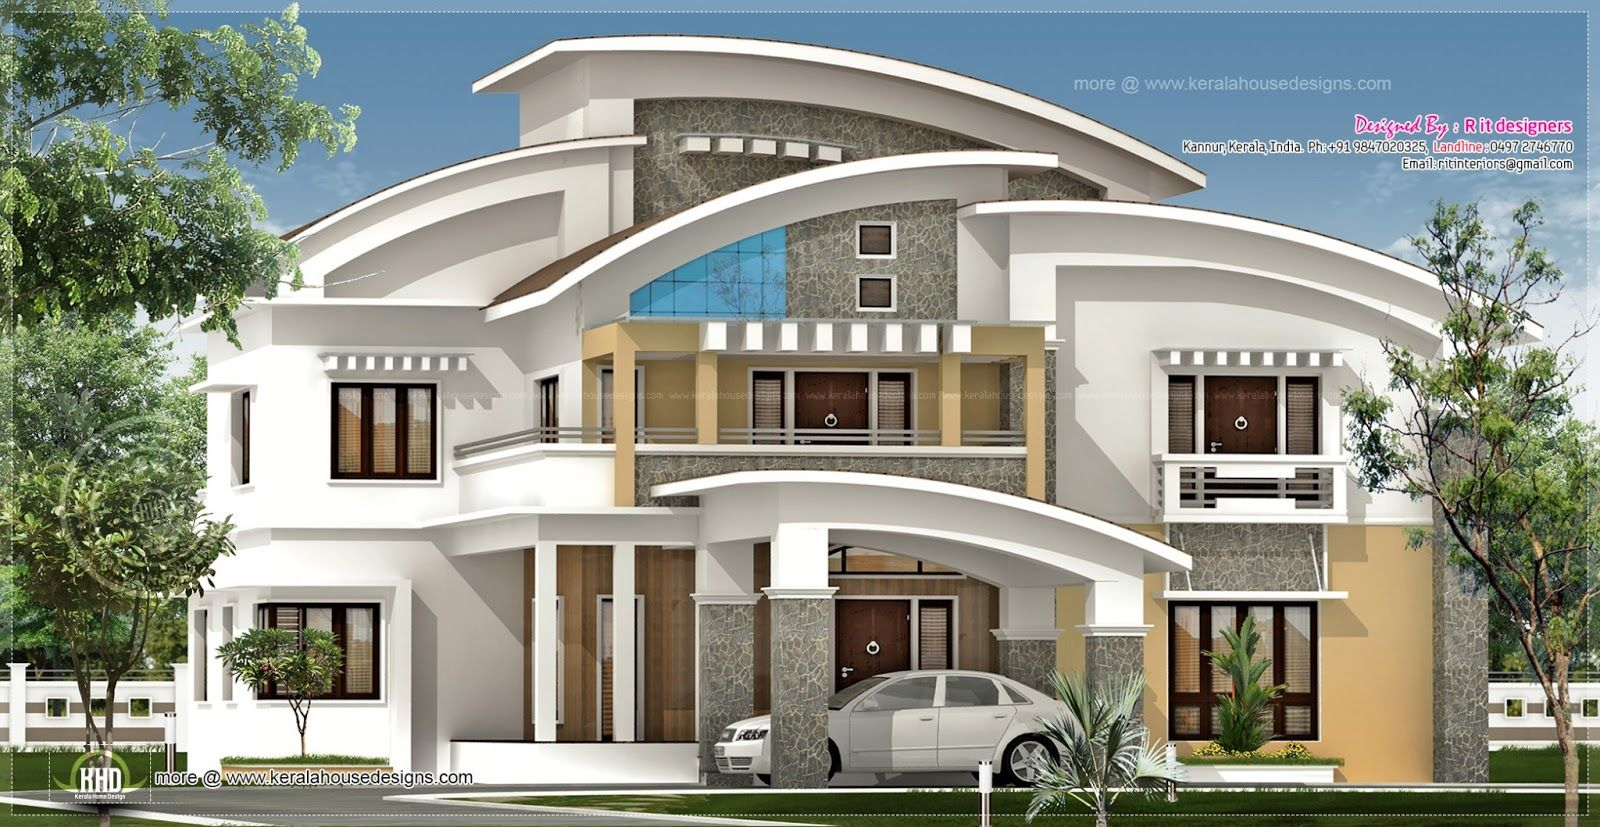 Awesome luxury homes plans 8 french country luxury home for House exterior design pictures